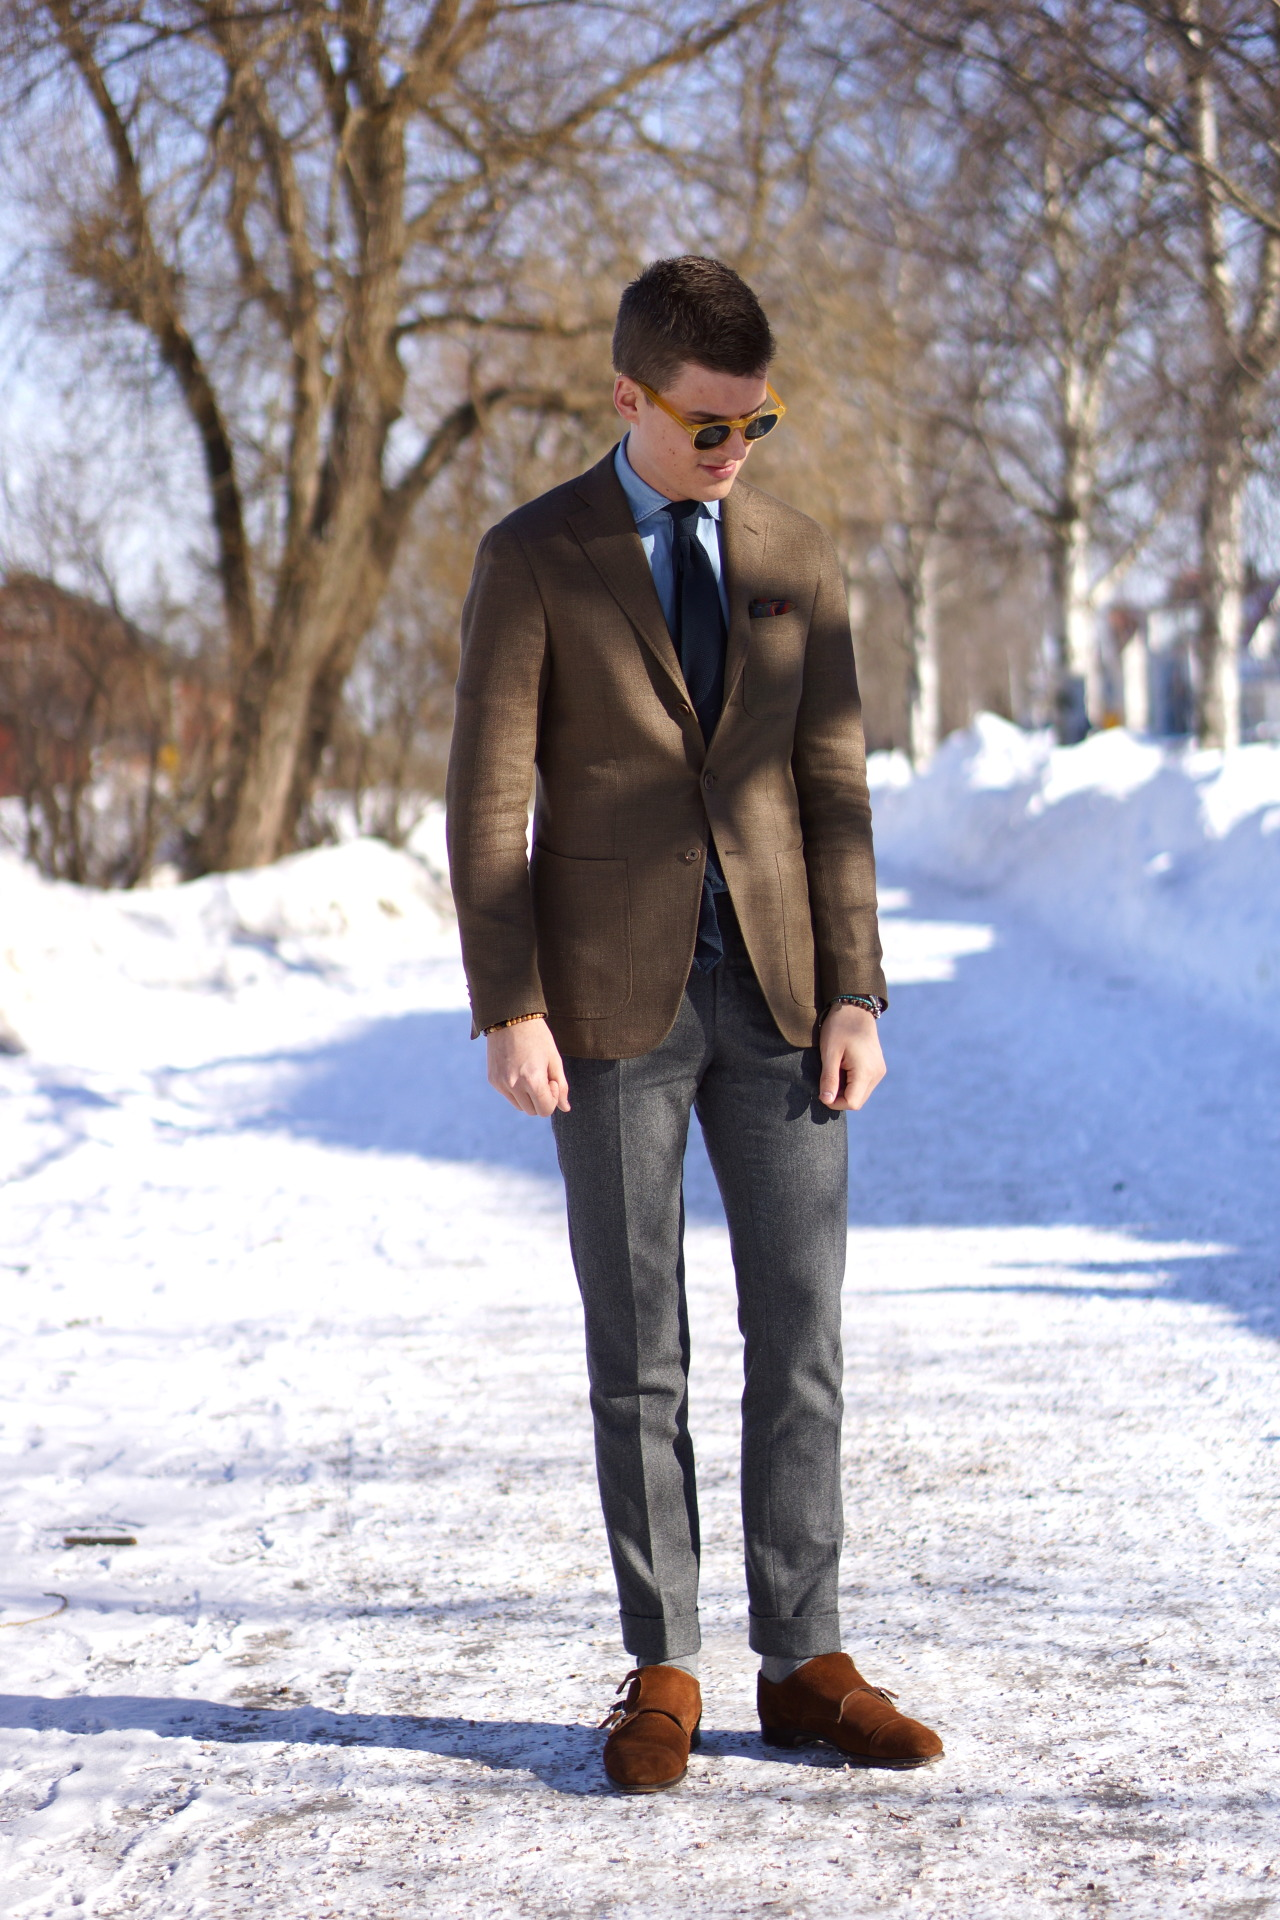 sartorialdoctrine:  WIWT Sportcoat: Caruso x Gabucci, Shirt: Del Siena, Tie: Passaggio Cravatte, Pochette: Drake's, Trousers: Incotex, Shoes: Ovadia & Sons, Sunglasses: Epos.   Colours and textures.